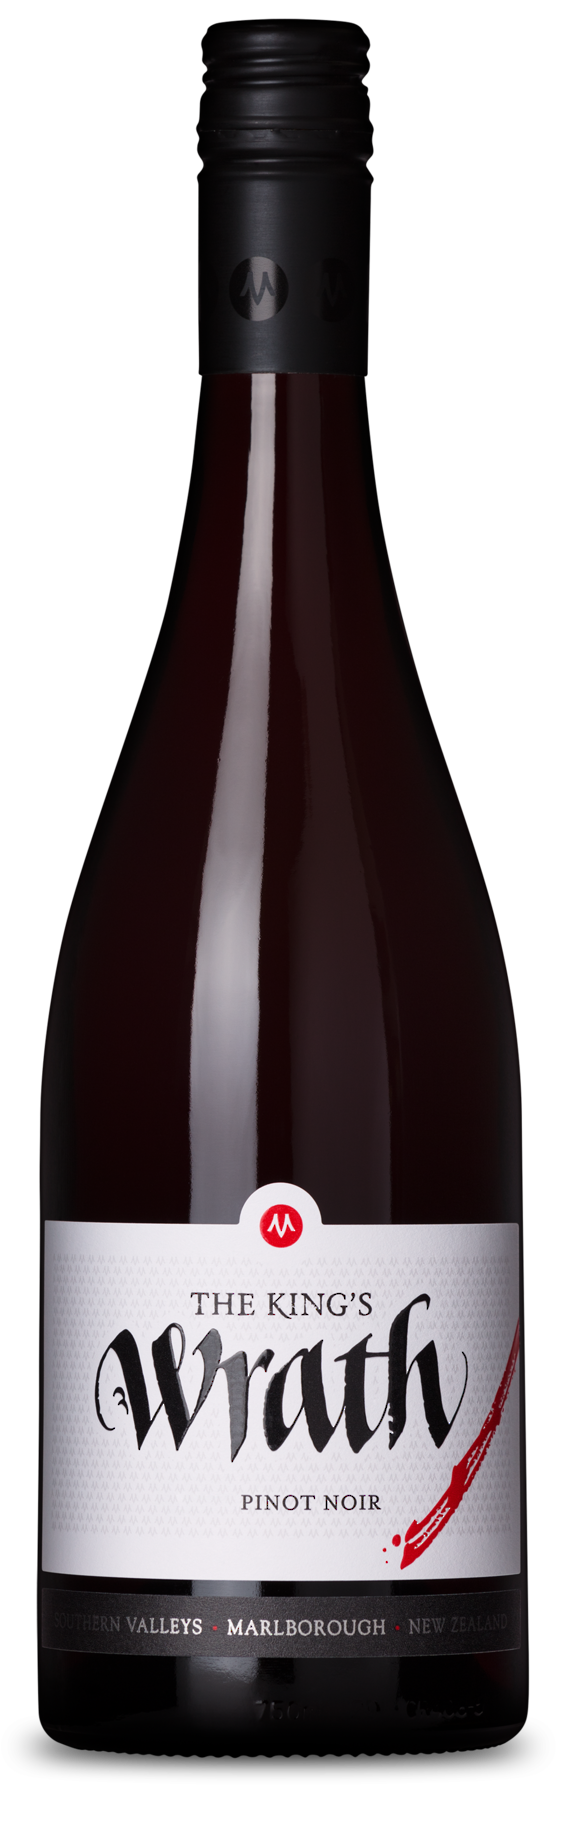 The King's Wrath Pinot Noir 2018 image 0